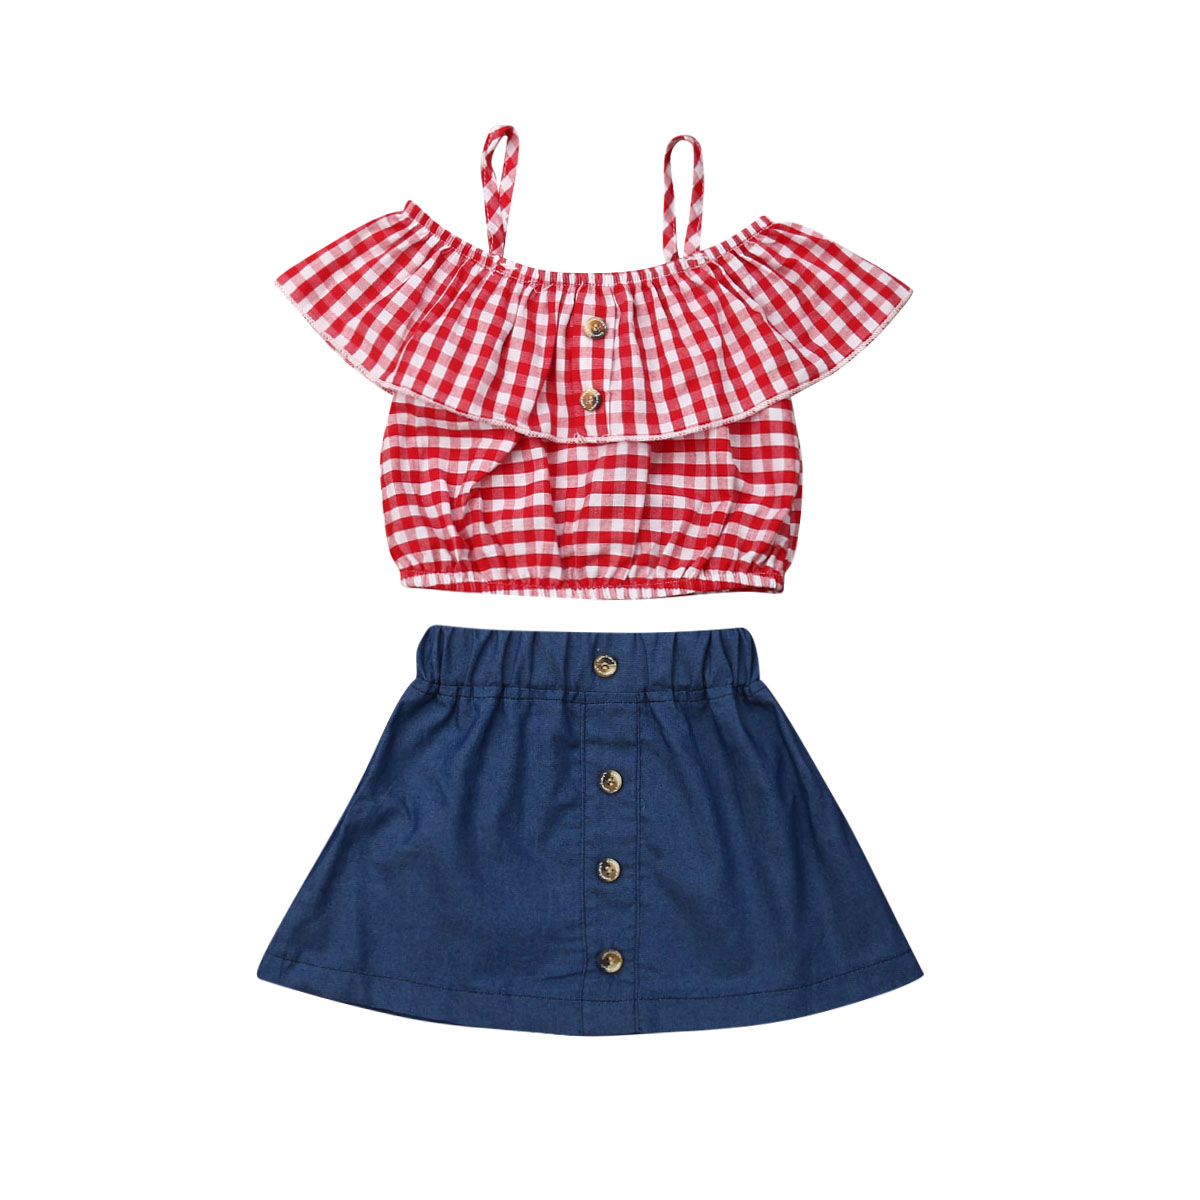 2Pcs Toddlers Baby Girls Outfits Plaid Off-Shouler Crop Top Shirt Ruffle Skirt Set